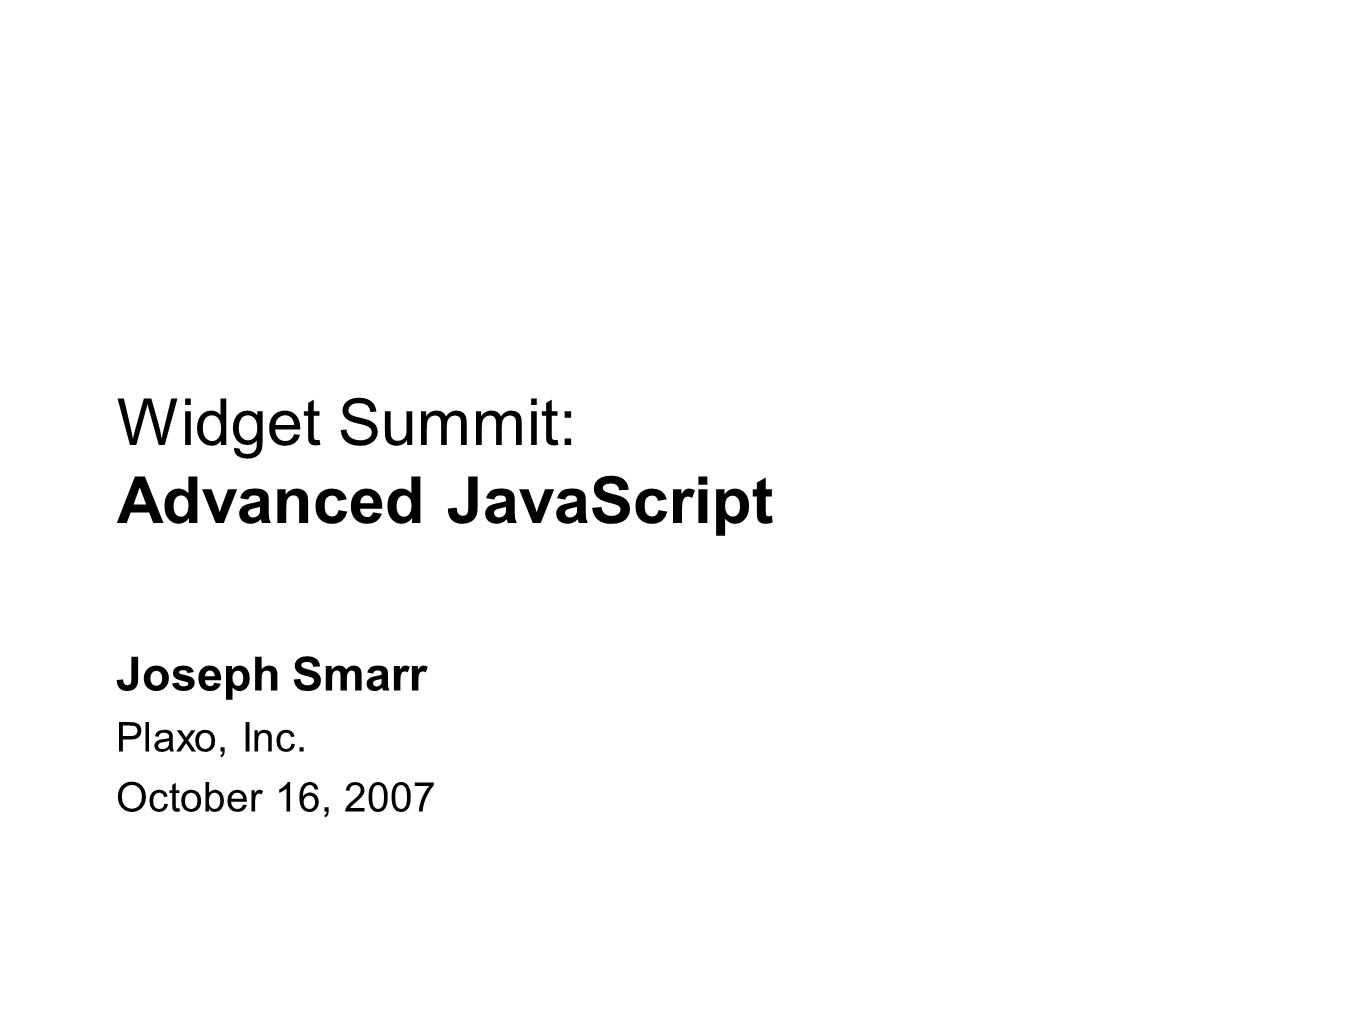 Widget Summit: Advanced JavaScript Joseph Smarr Plaxo, Inc. October 16, 2007